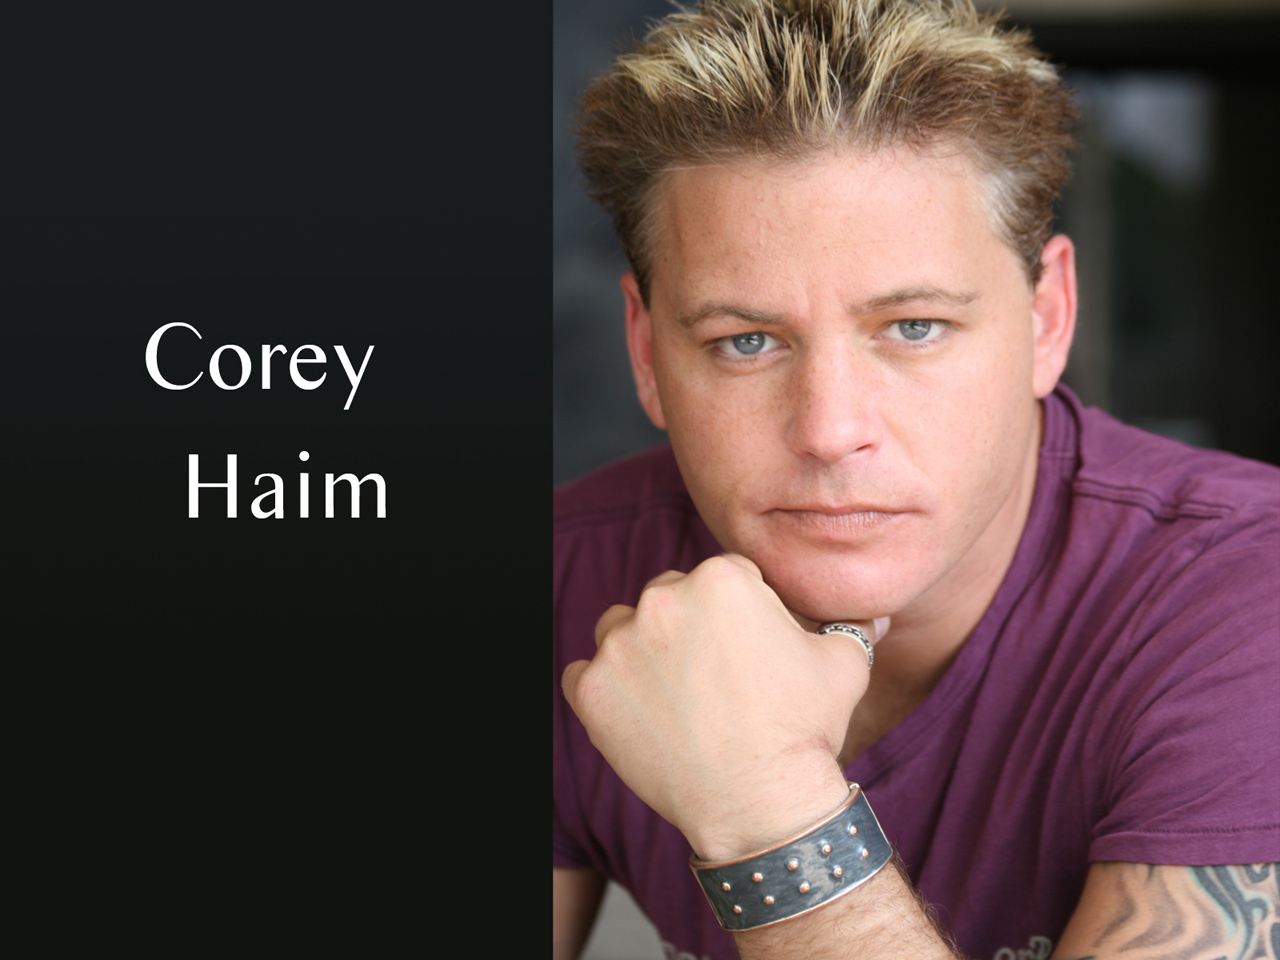 who was corey haim dating before he died